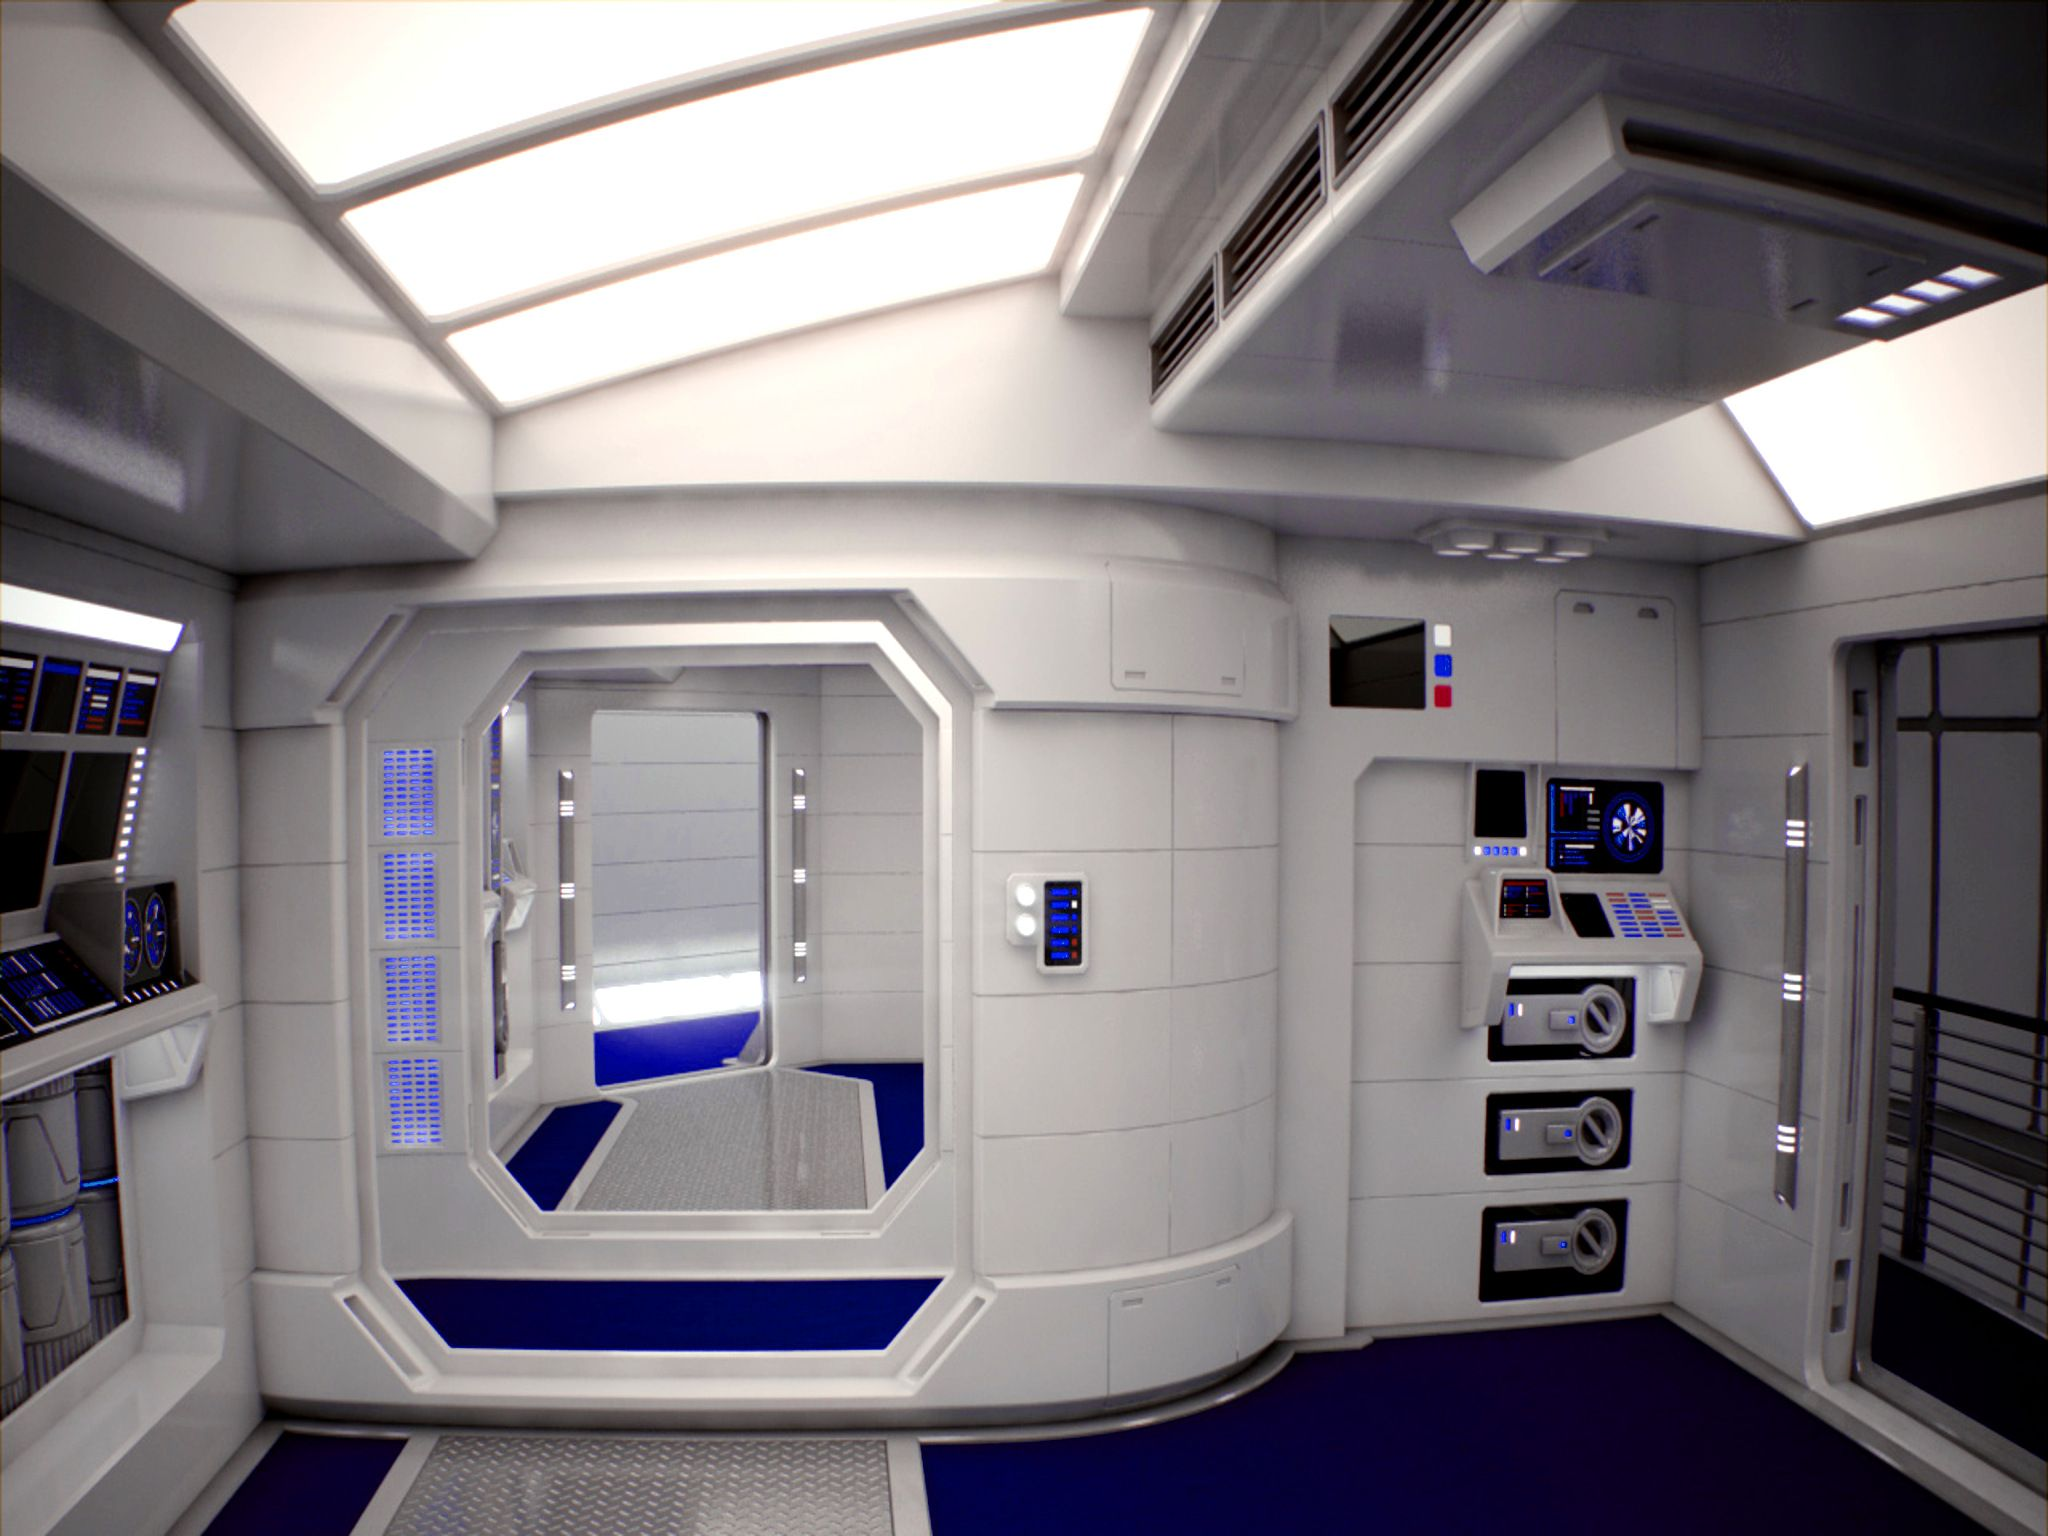 Modes For Living Self Made Furniture A Little Applied Diy Can Transform The Dowdiest Of Rooms Into An Opulent B Spaceship Interior Futuristic Interior Design